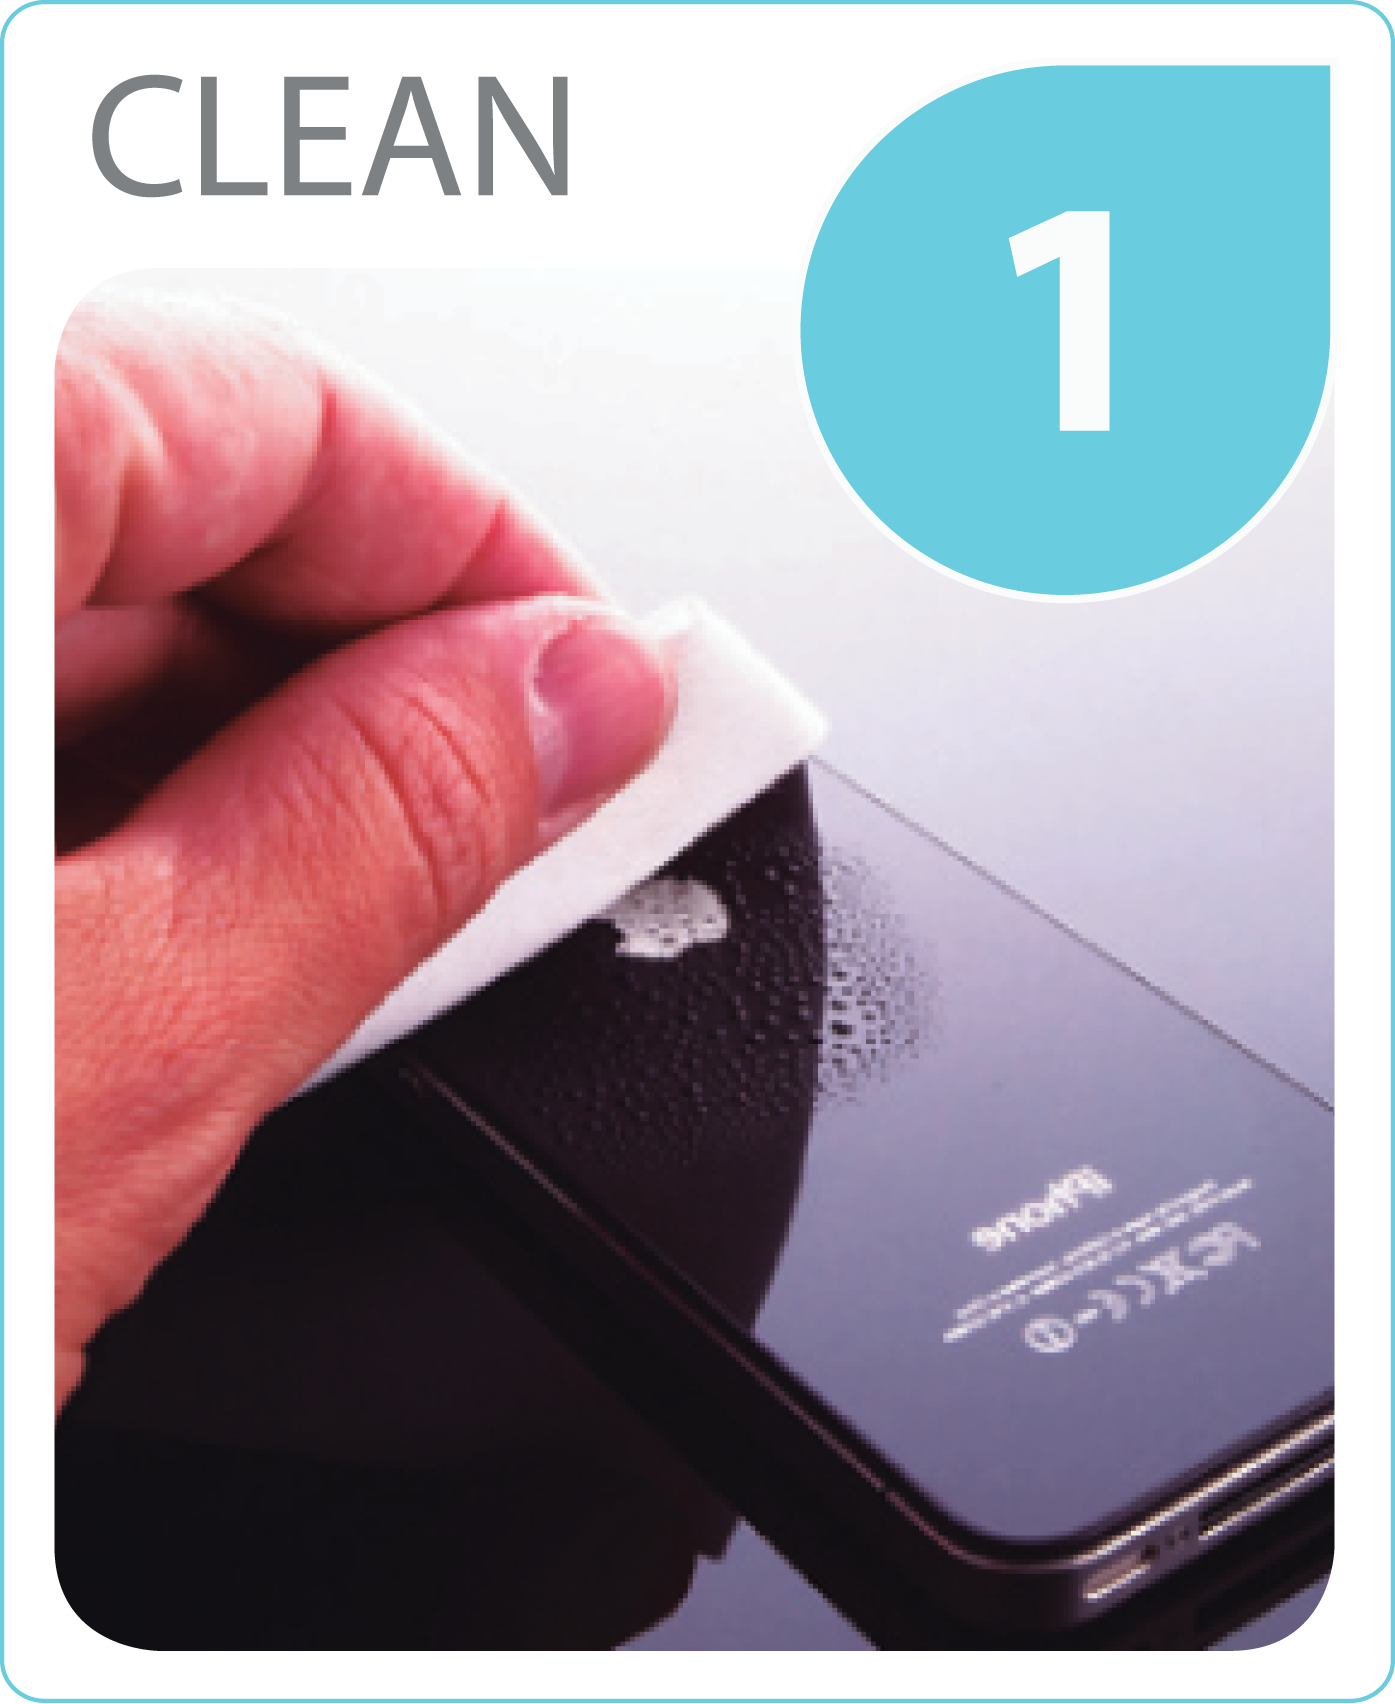 clean your device